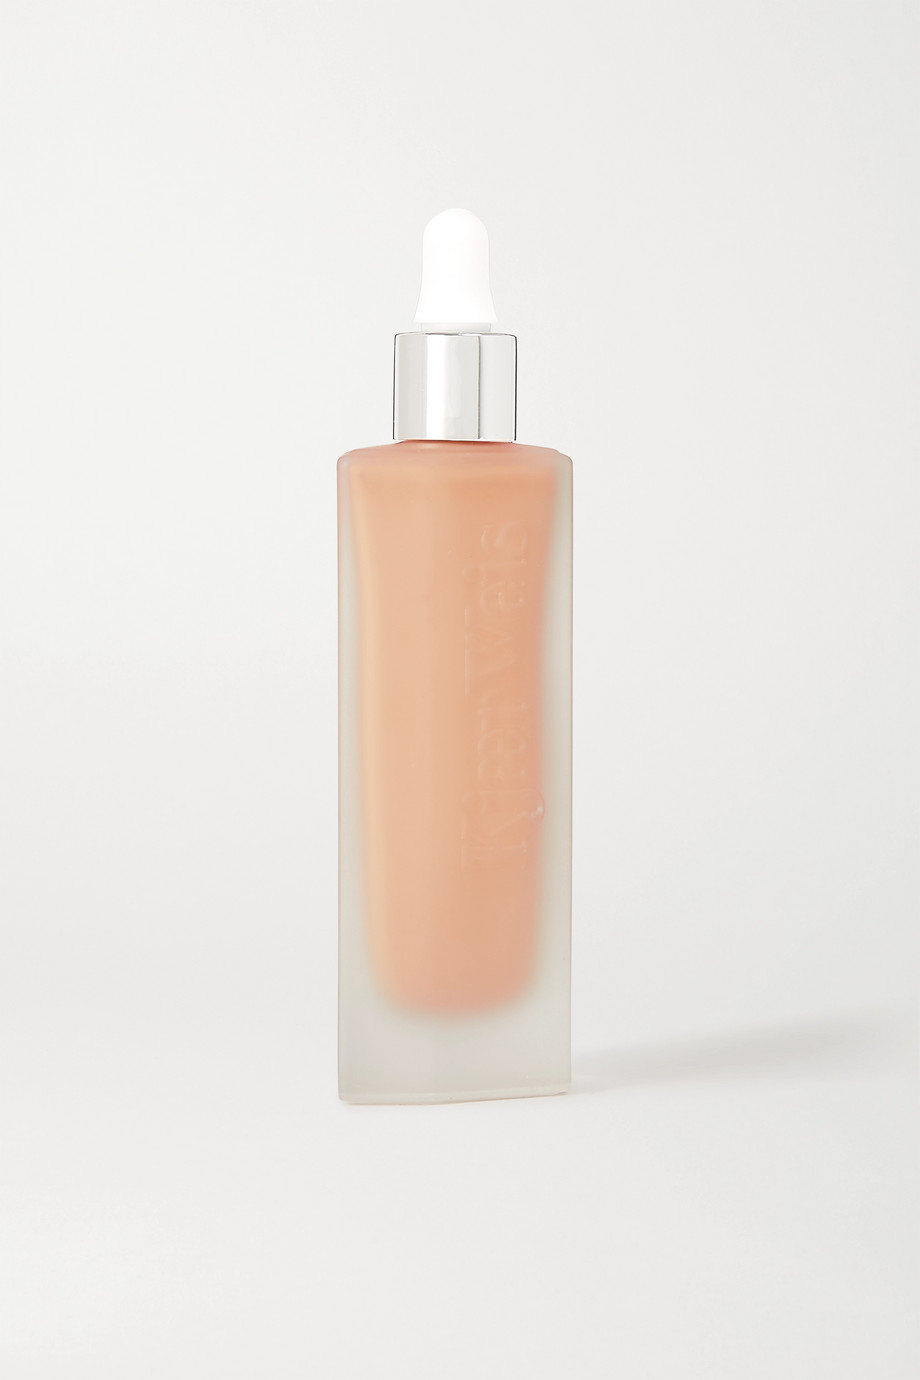 Kjaer Weis Invisible Touch Liquid Foundation - Refined F134, 30ml